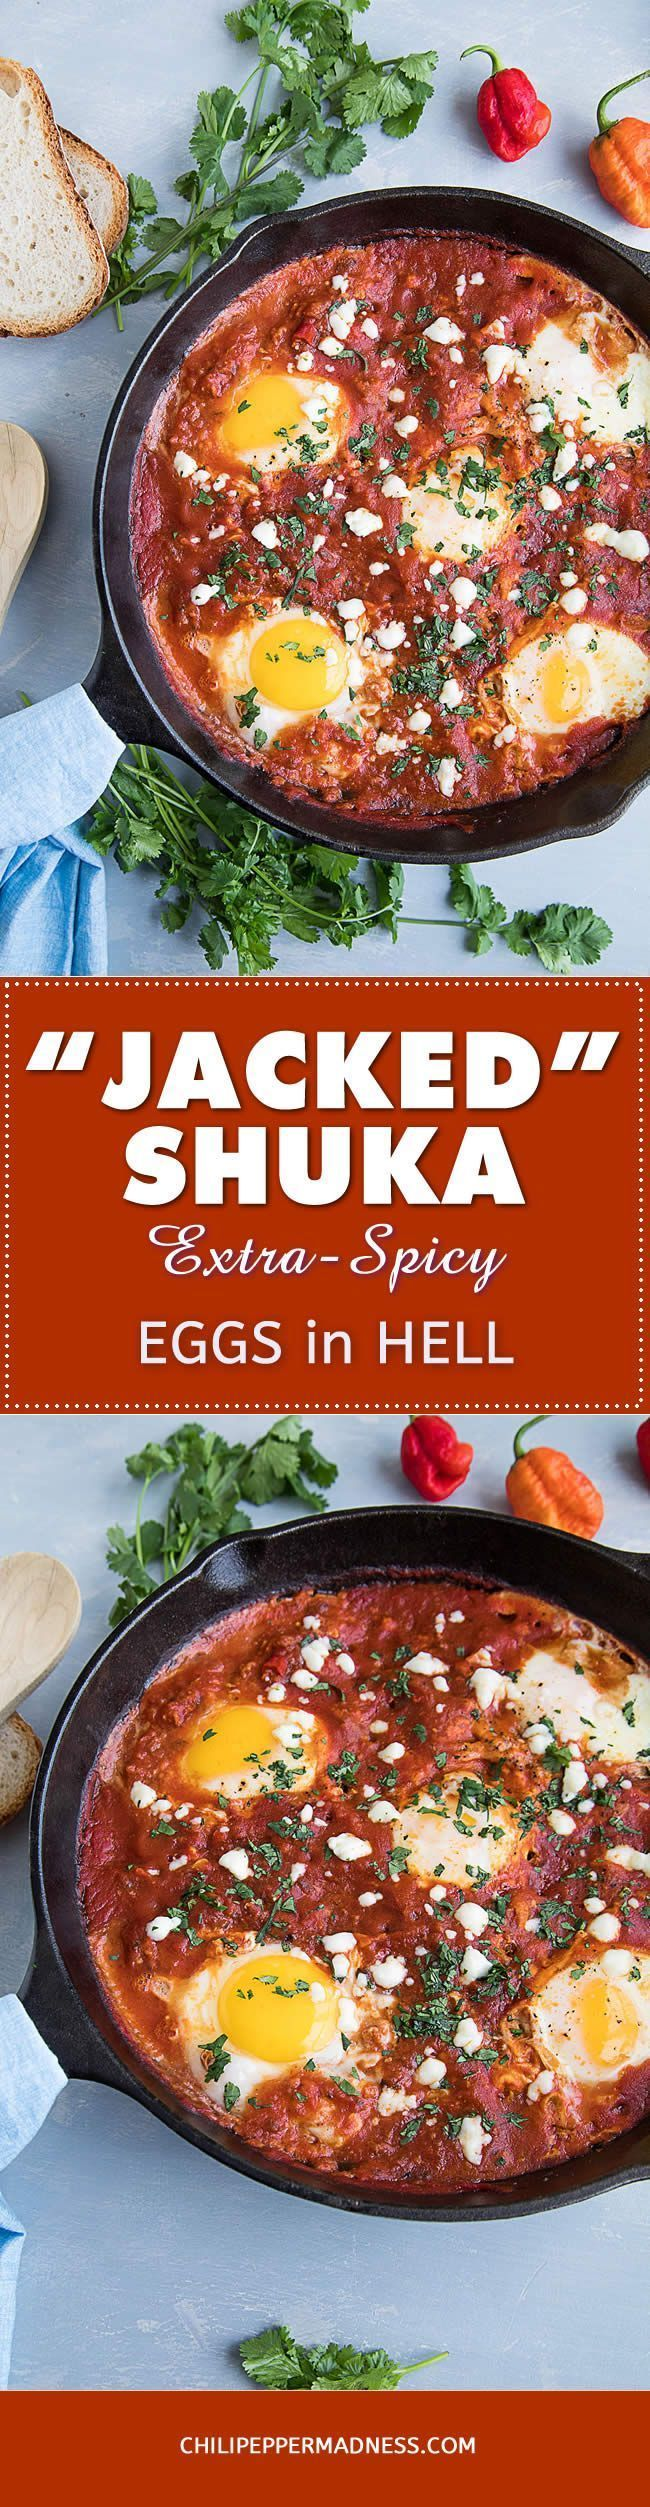 Jacked-Shuka (Extra Spicy Eggs in Hell) - If you love shakshuka, a recipe of eggs simmered in spicy tomato sauce, you'll love this extra spicy version made with ghost peppers and hot chorizo. Bring on the heat!